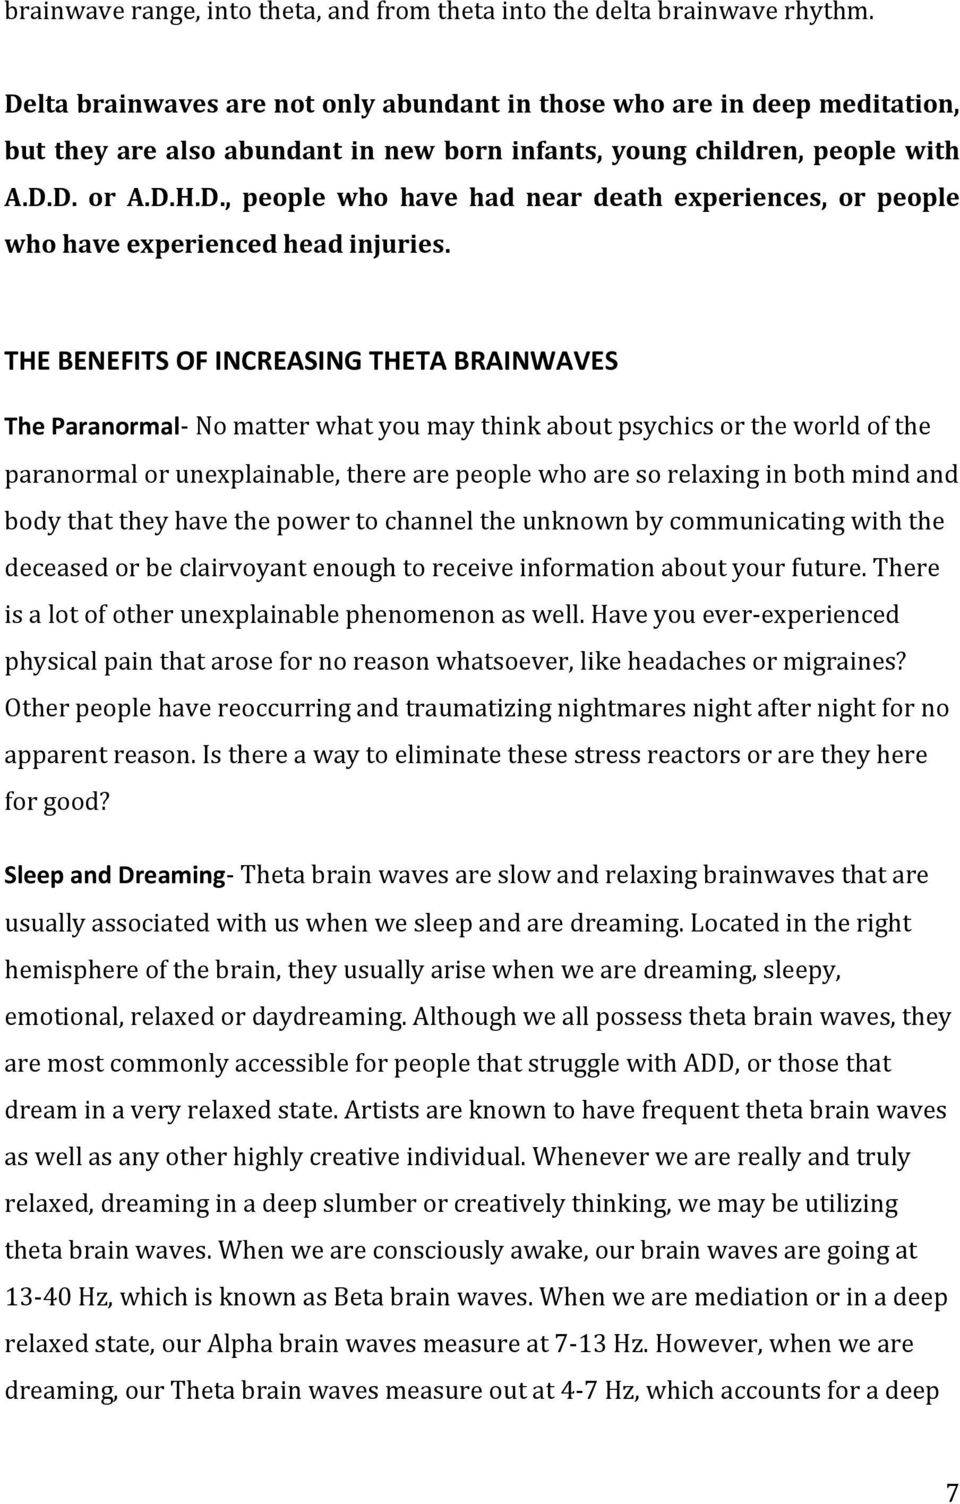 THE BENEFITS OF INCREASING THETA BRAINWAVES The Paranormal- No matter what you may think about psychics or the world of the paranormal or unexplainable, there are people who are so relaxing in both